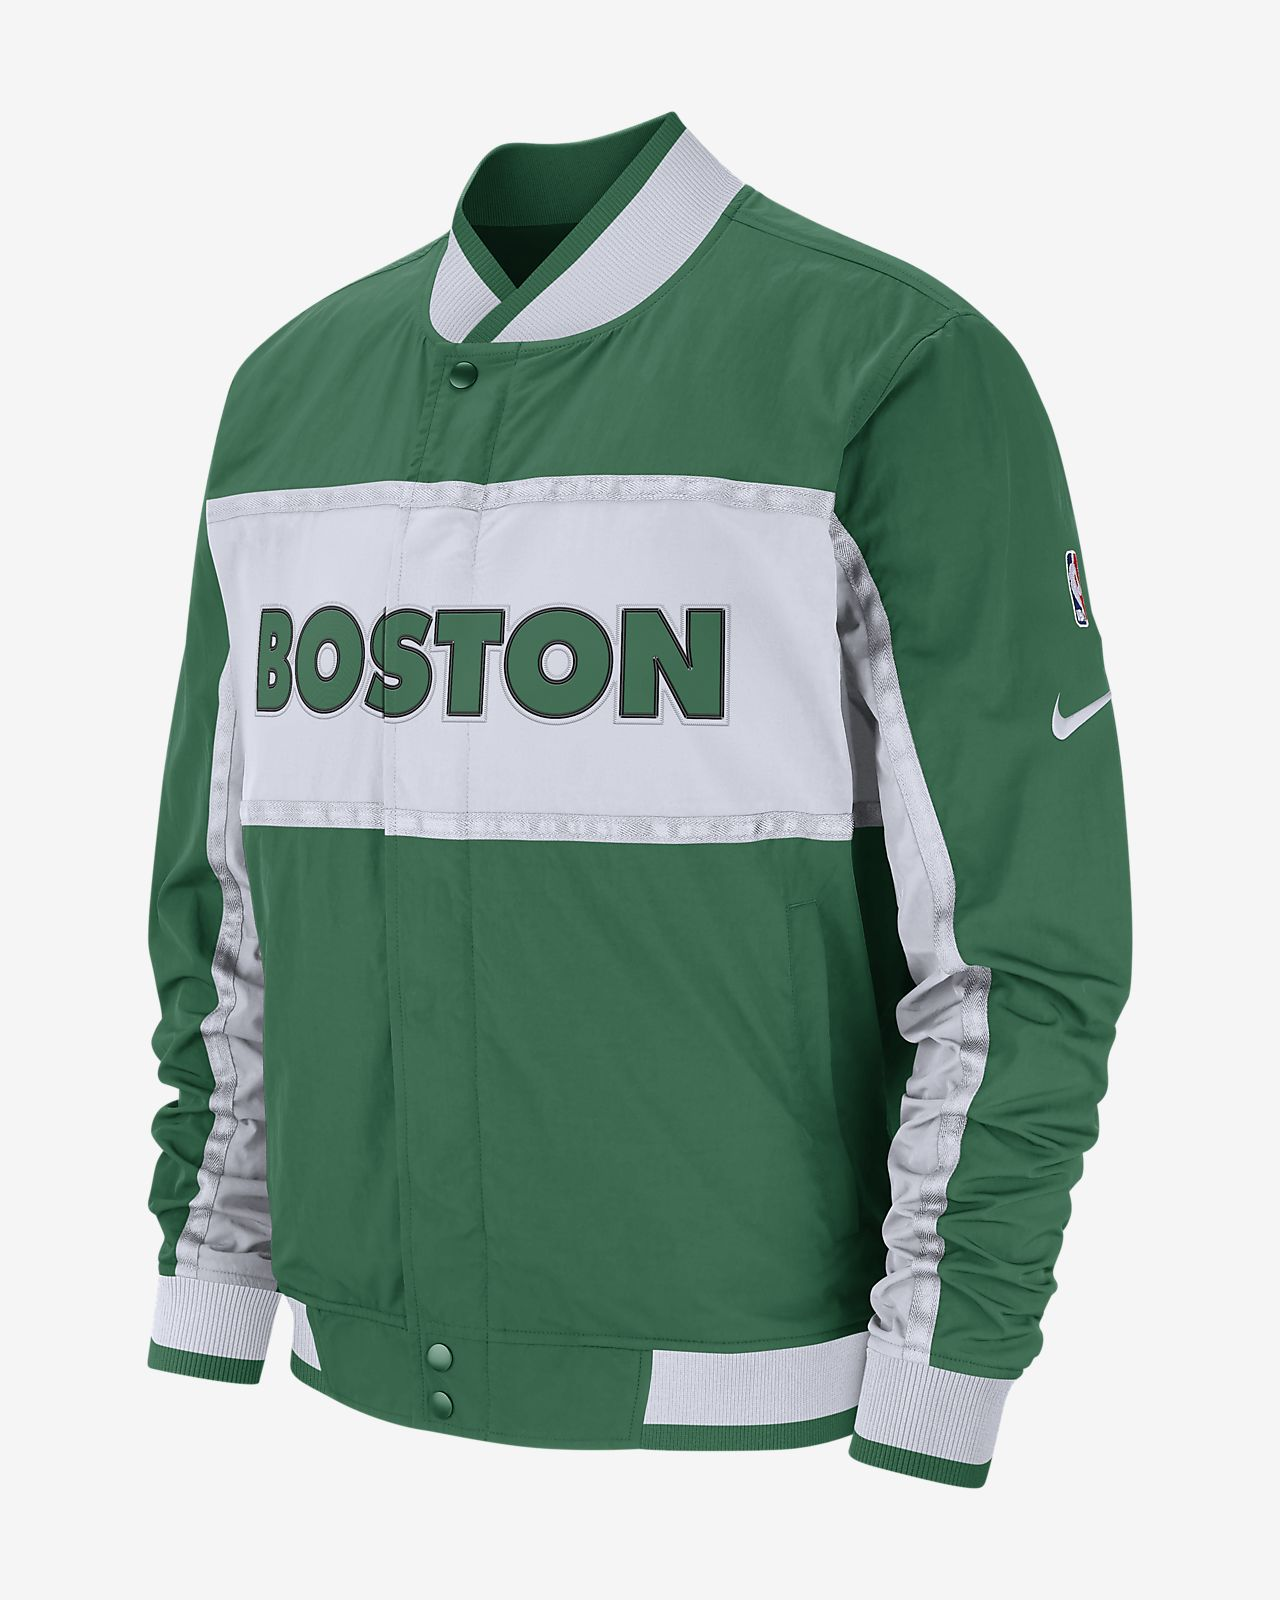 Boston Celtics Nike Courtside Men's NBA Jacket